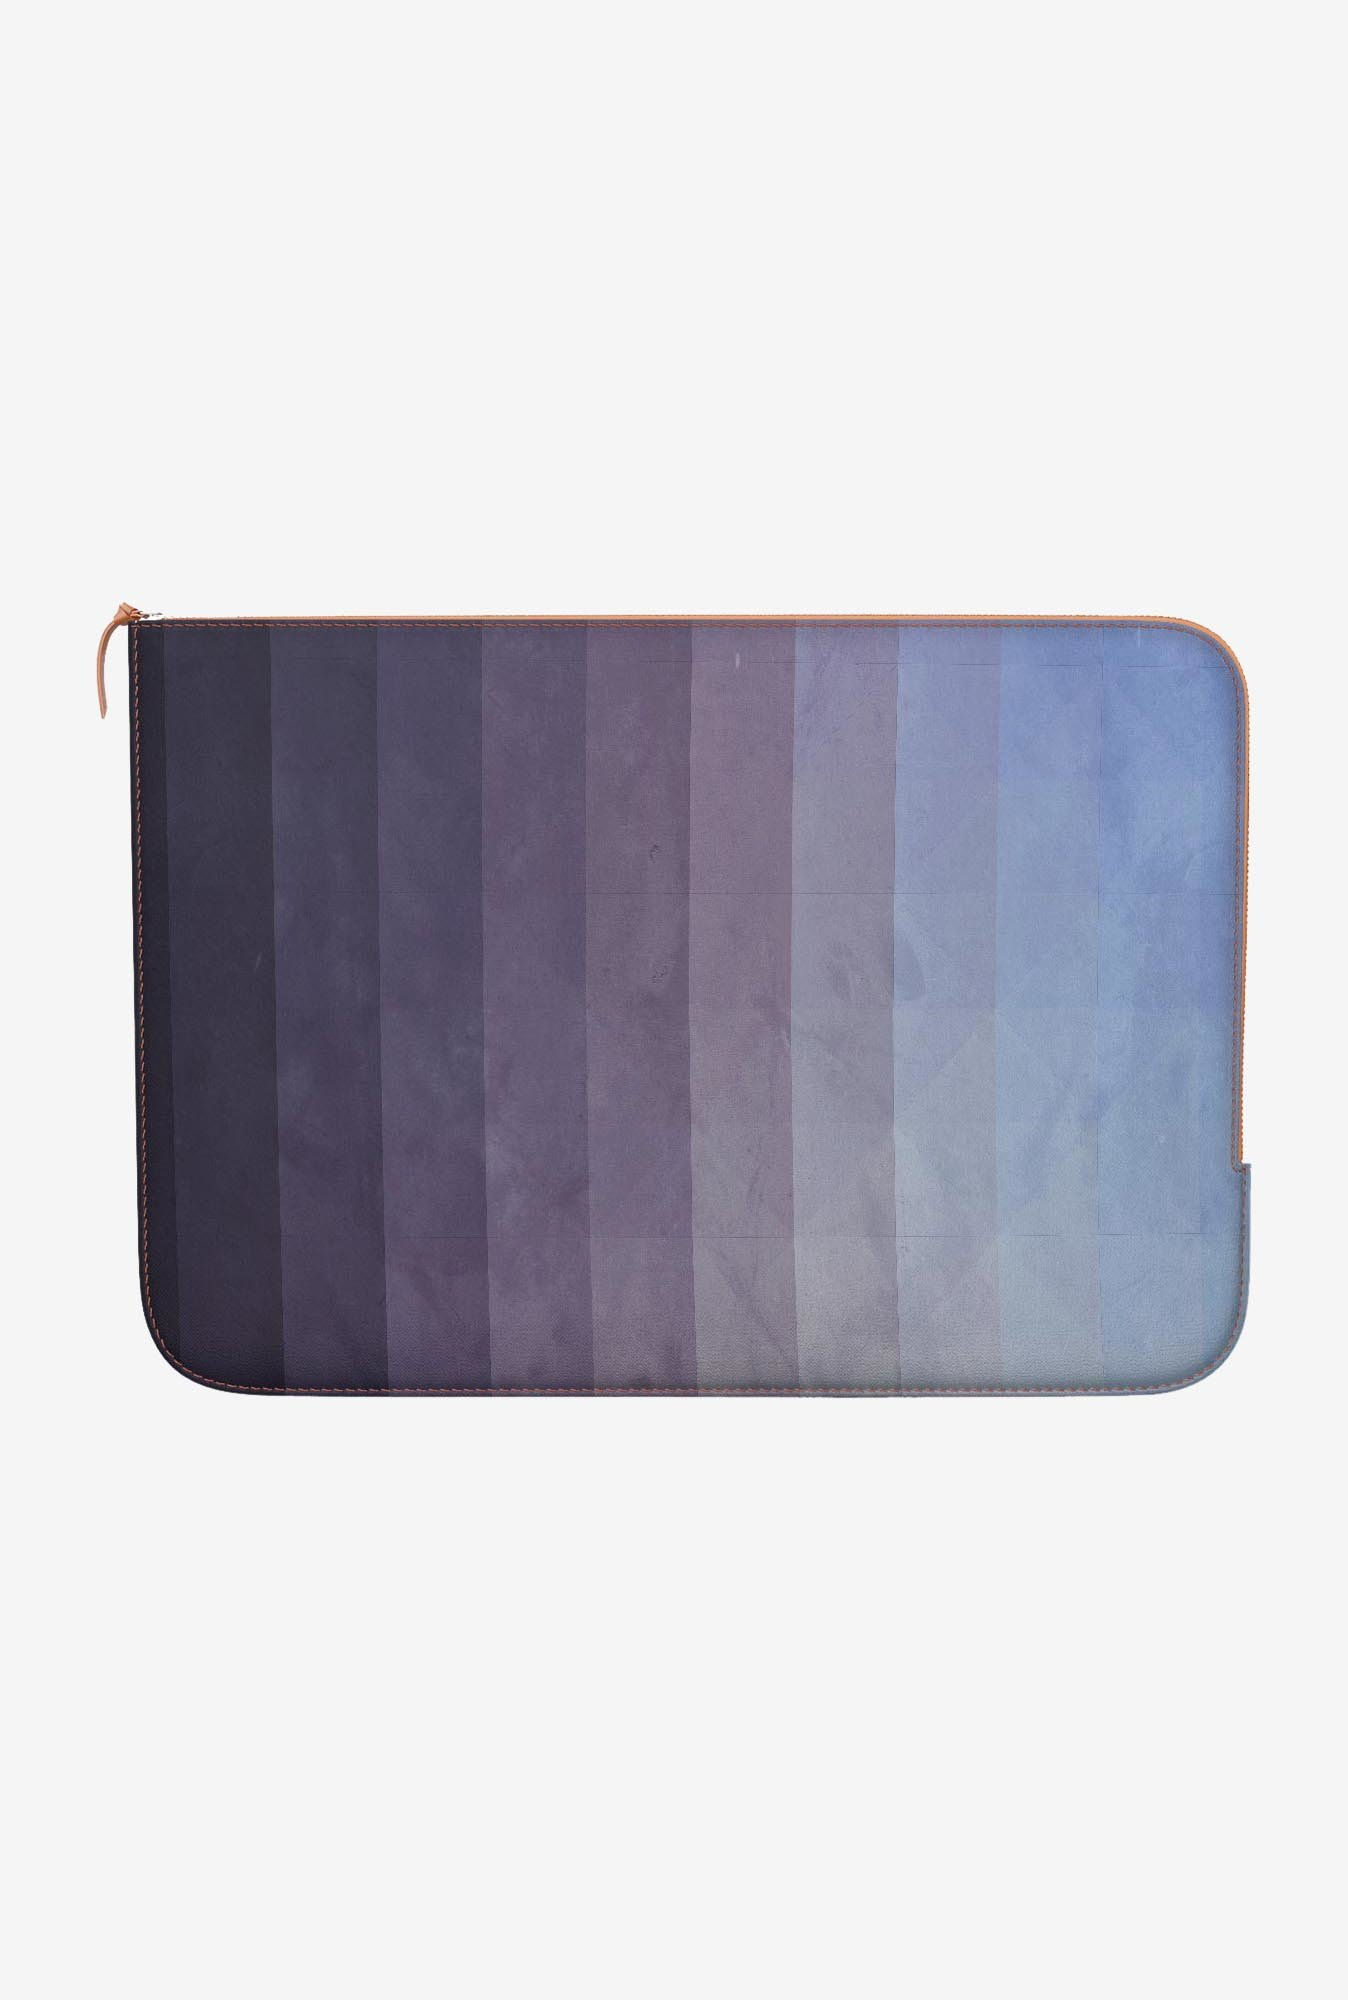 "DailyObjects Myssyng Yww Macbook Pro 13"" Zippered Sleeve"